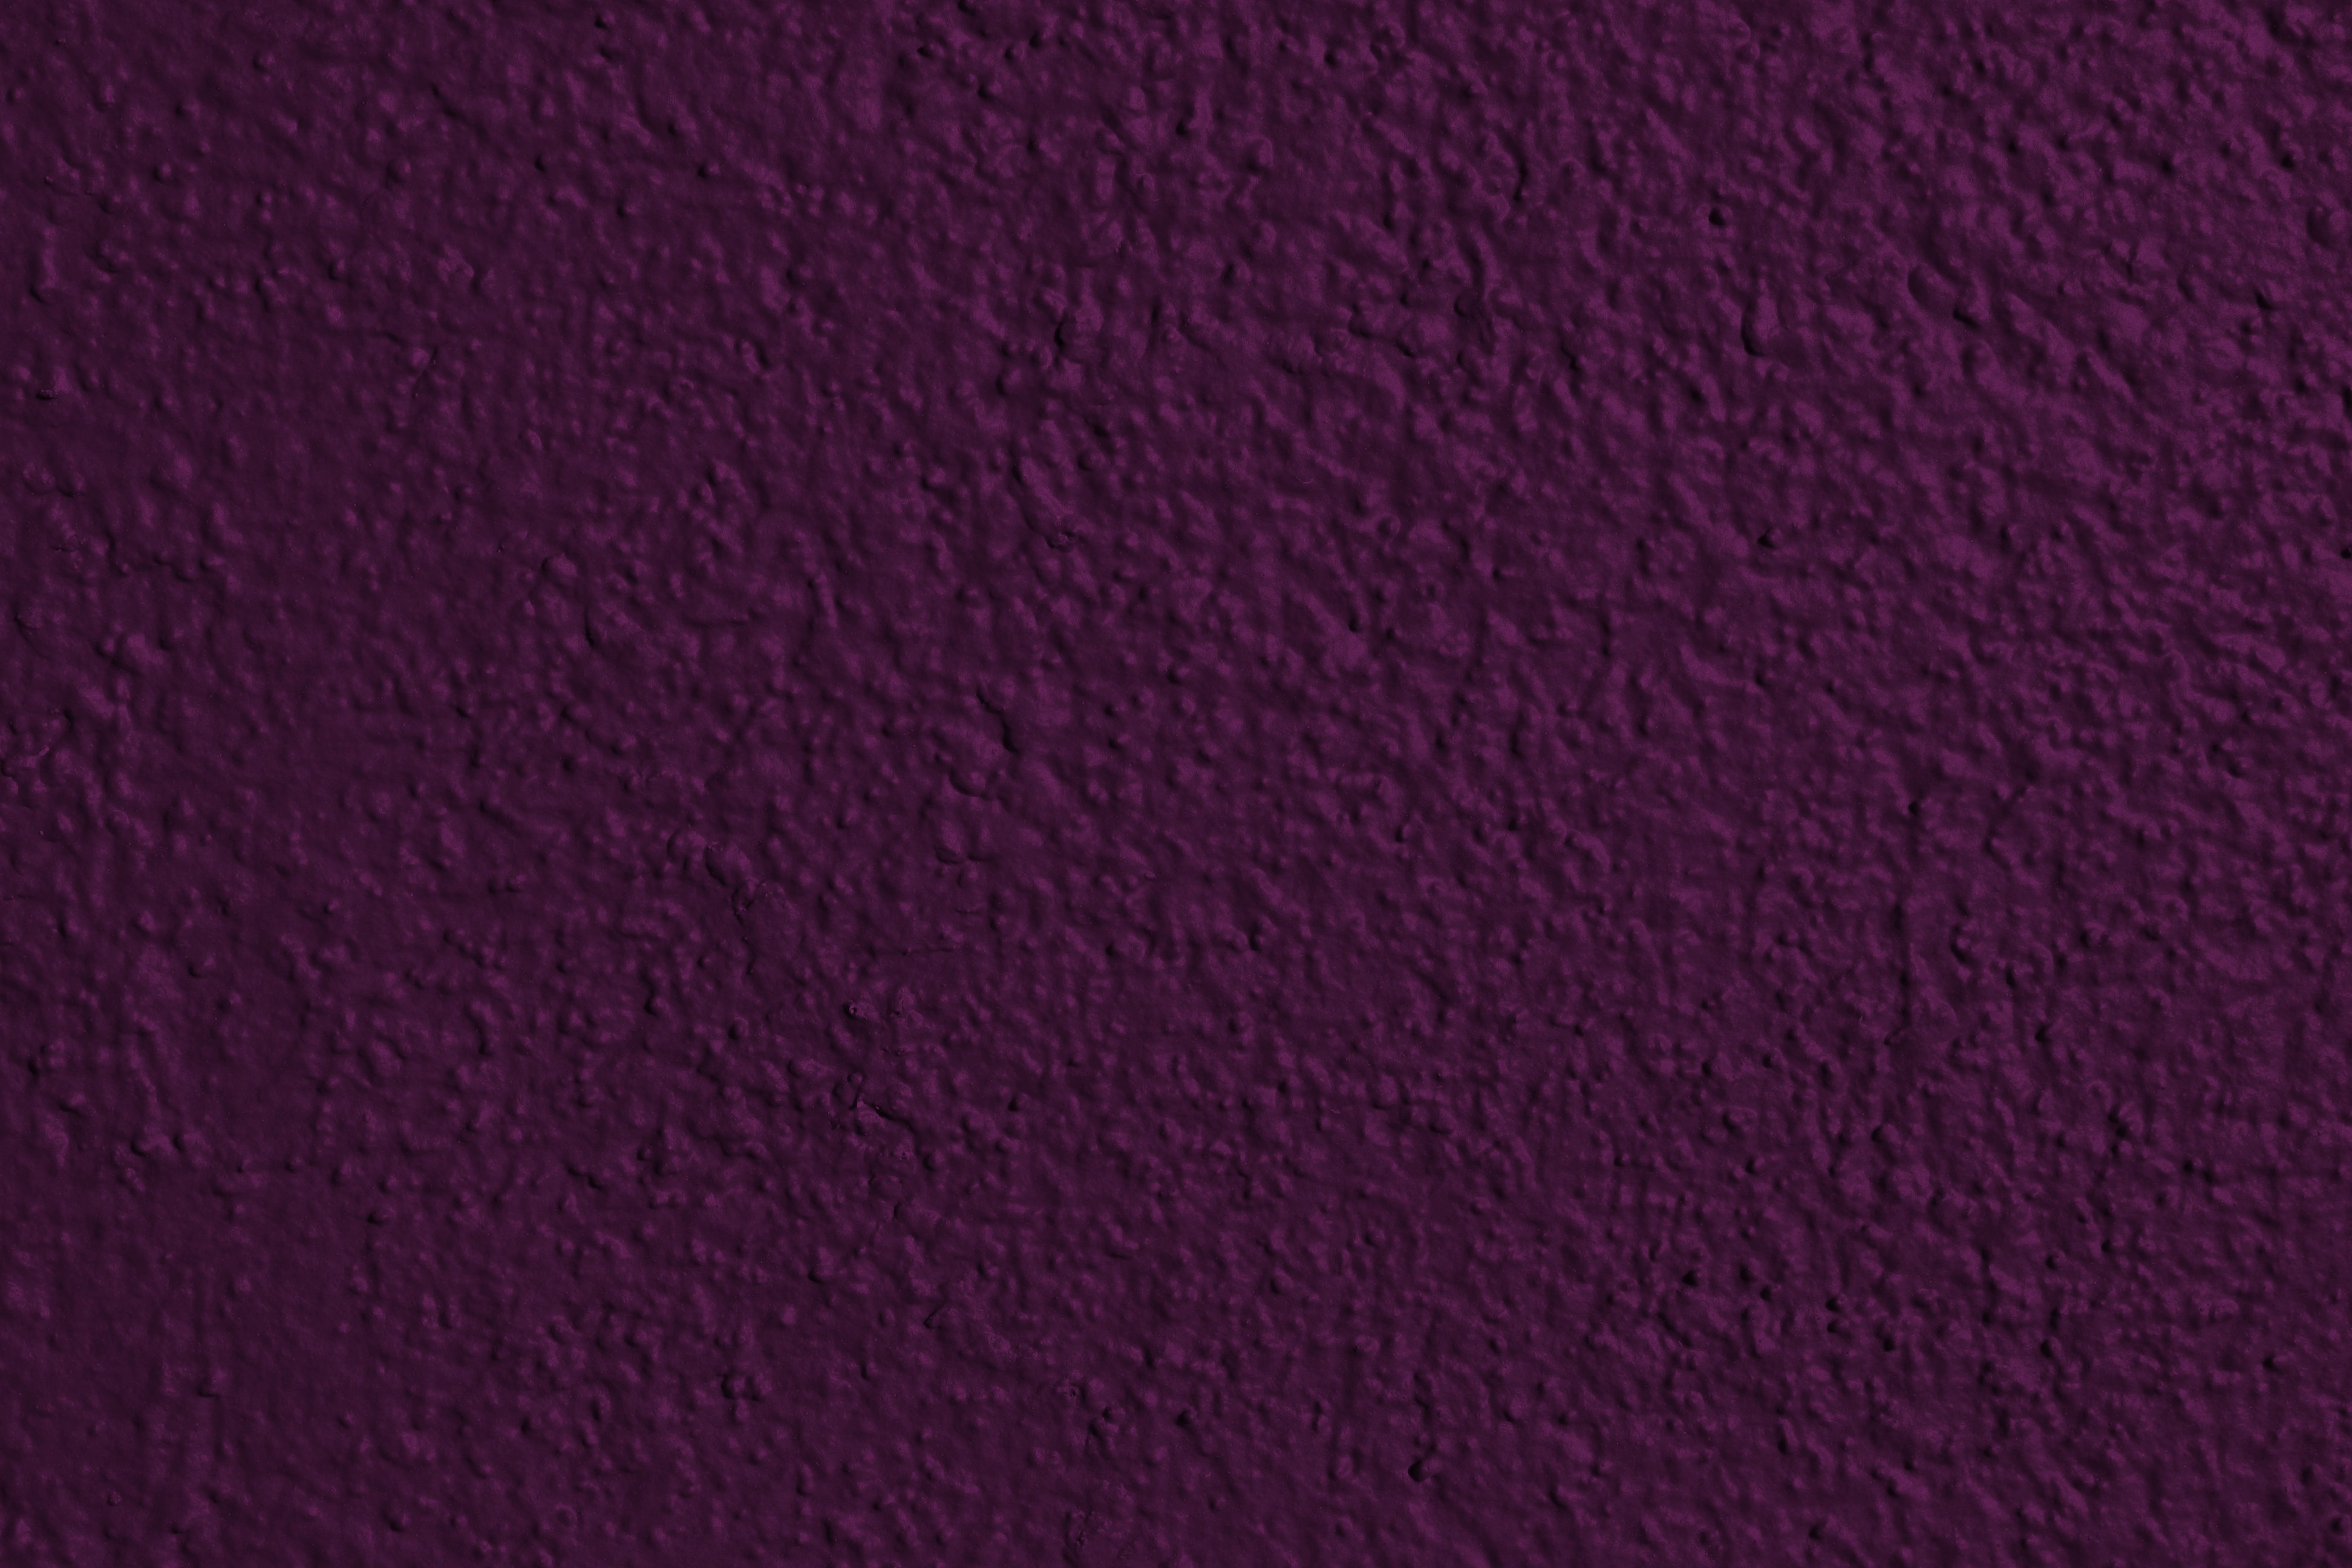 Magenta painted wall texture picture free photograph for Paint a dark picture